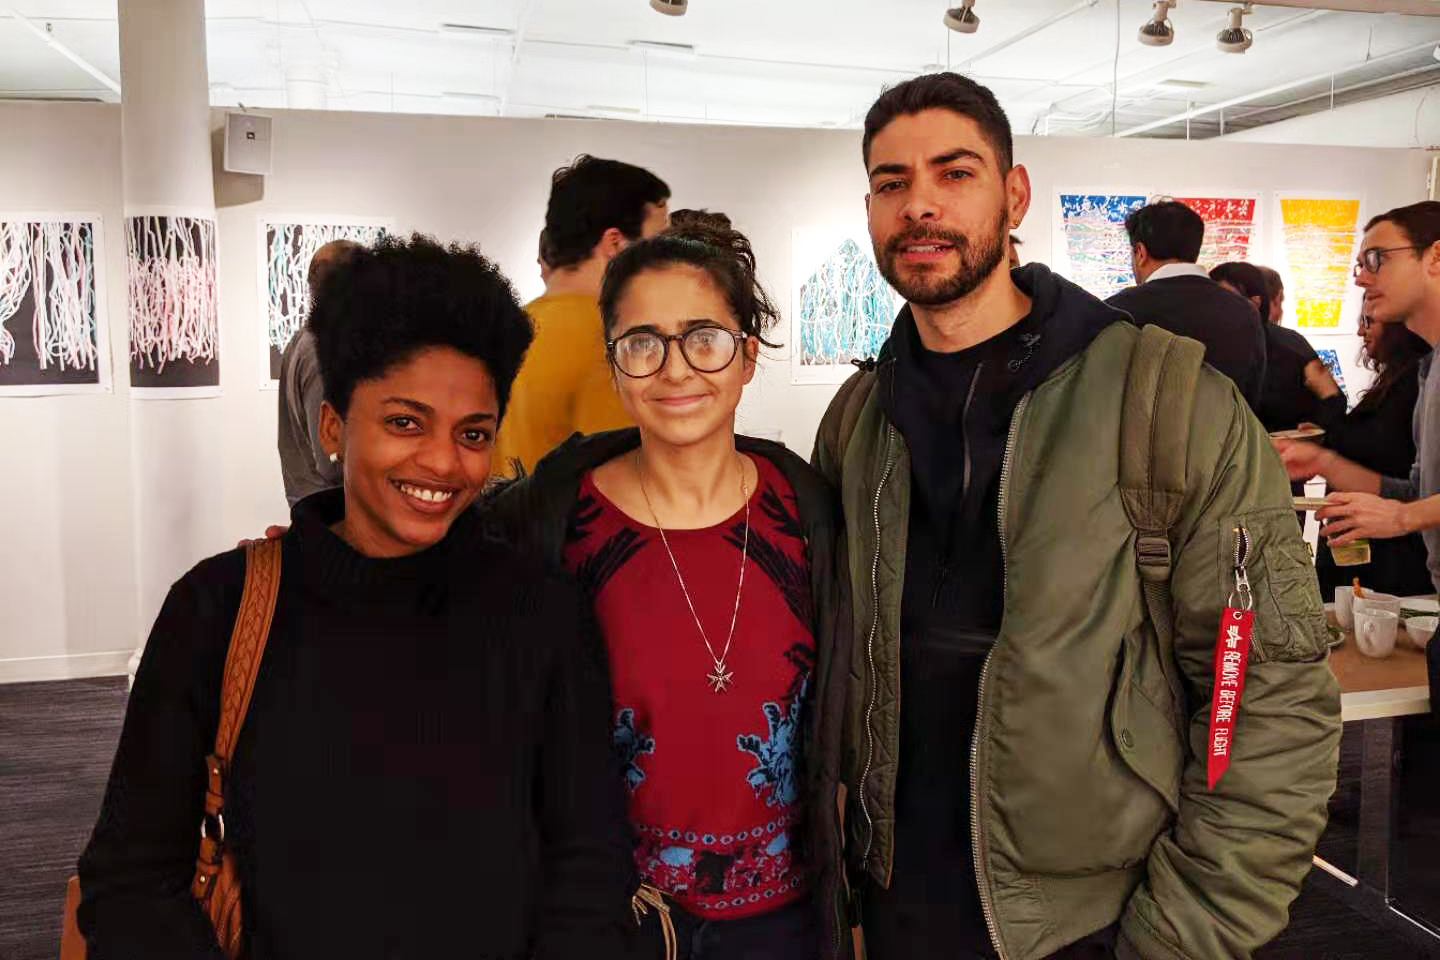 Photo of three alumni standing in a gallery space.